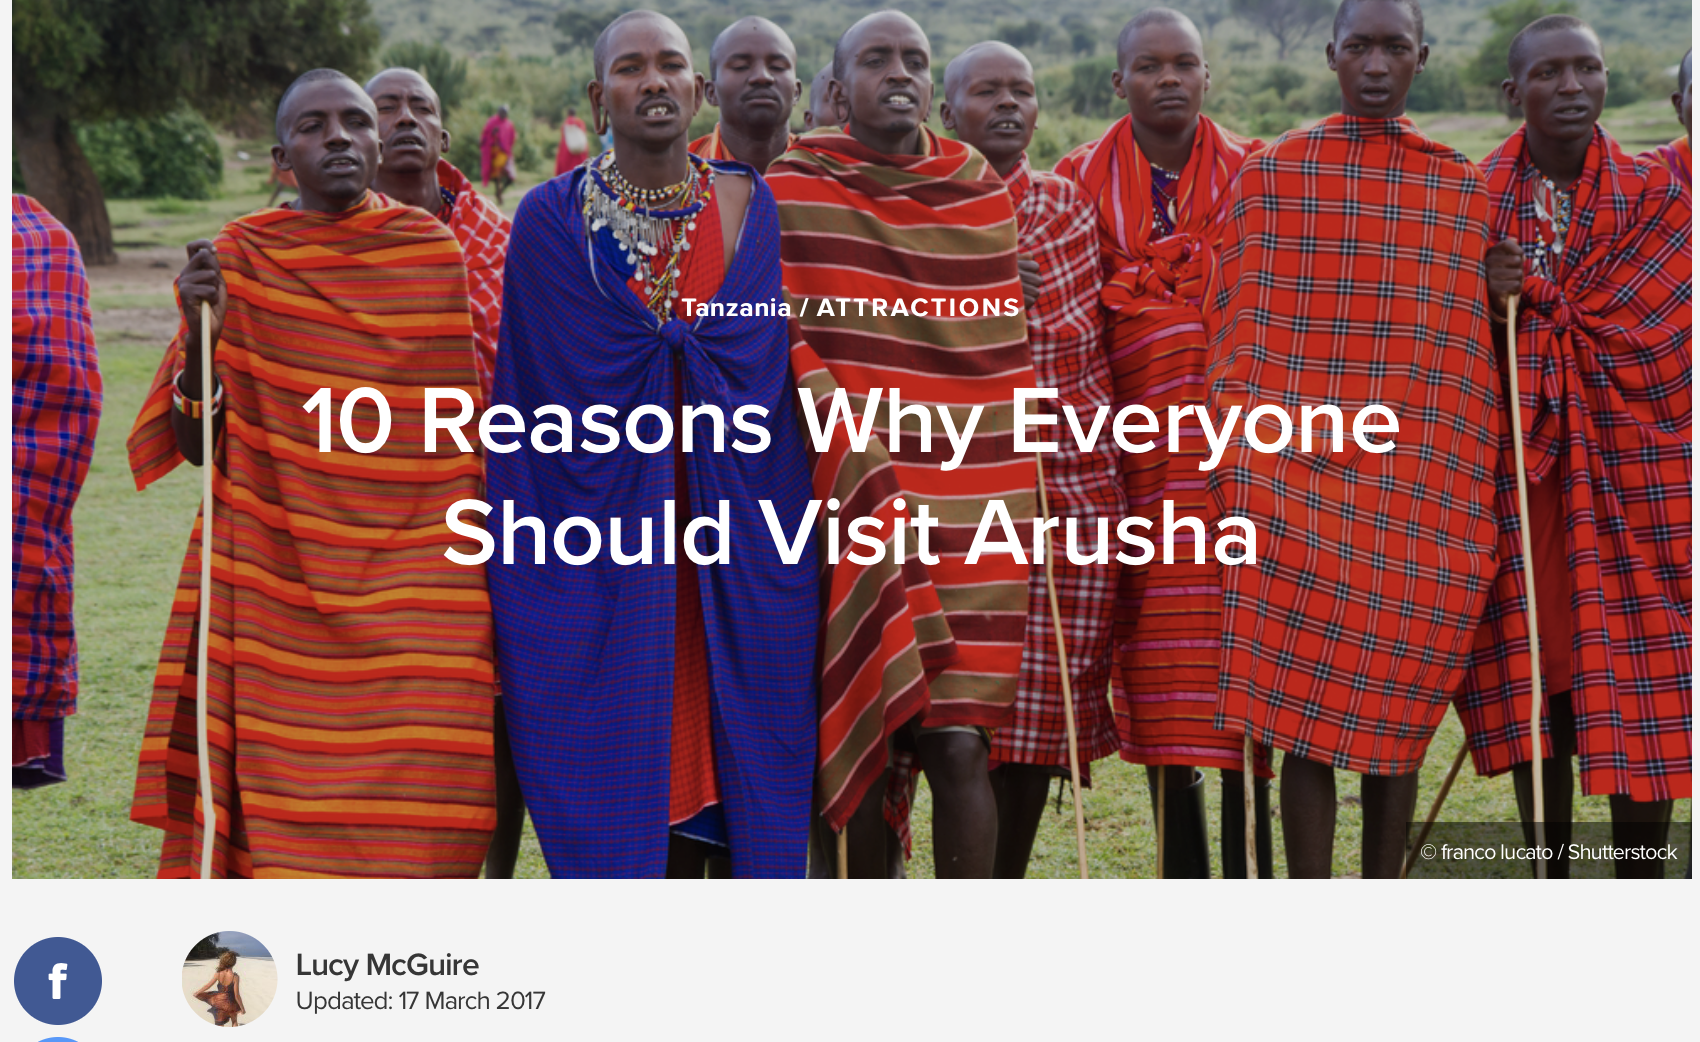 Reasons to visit Arusha